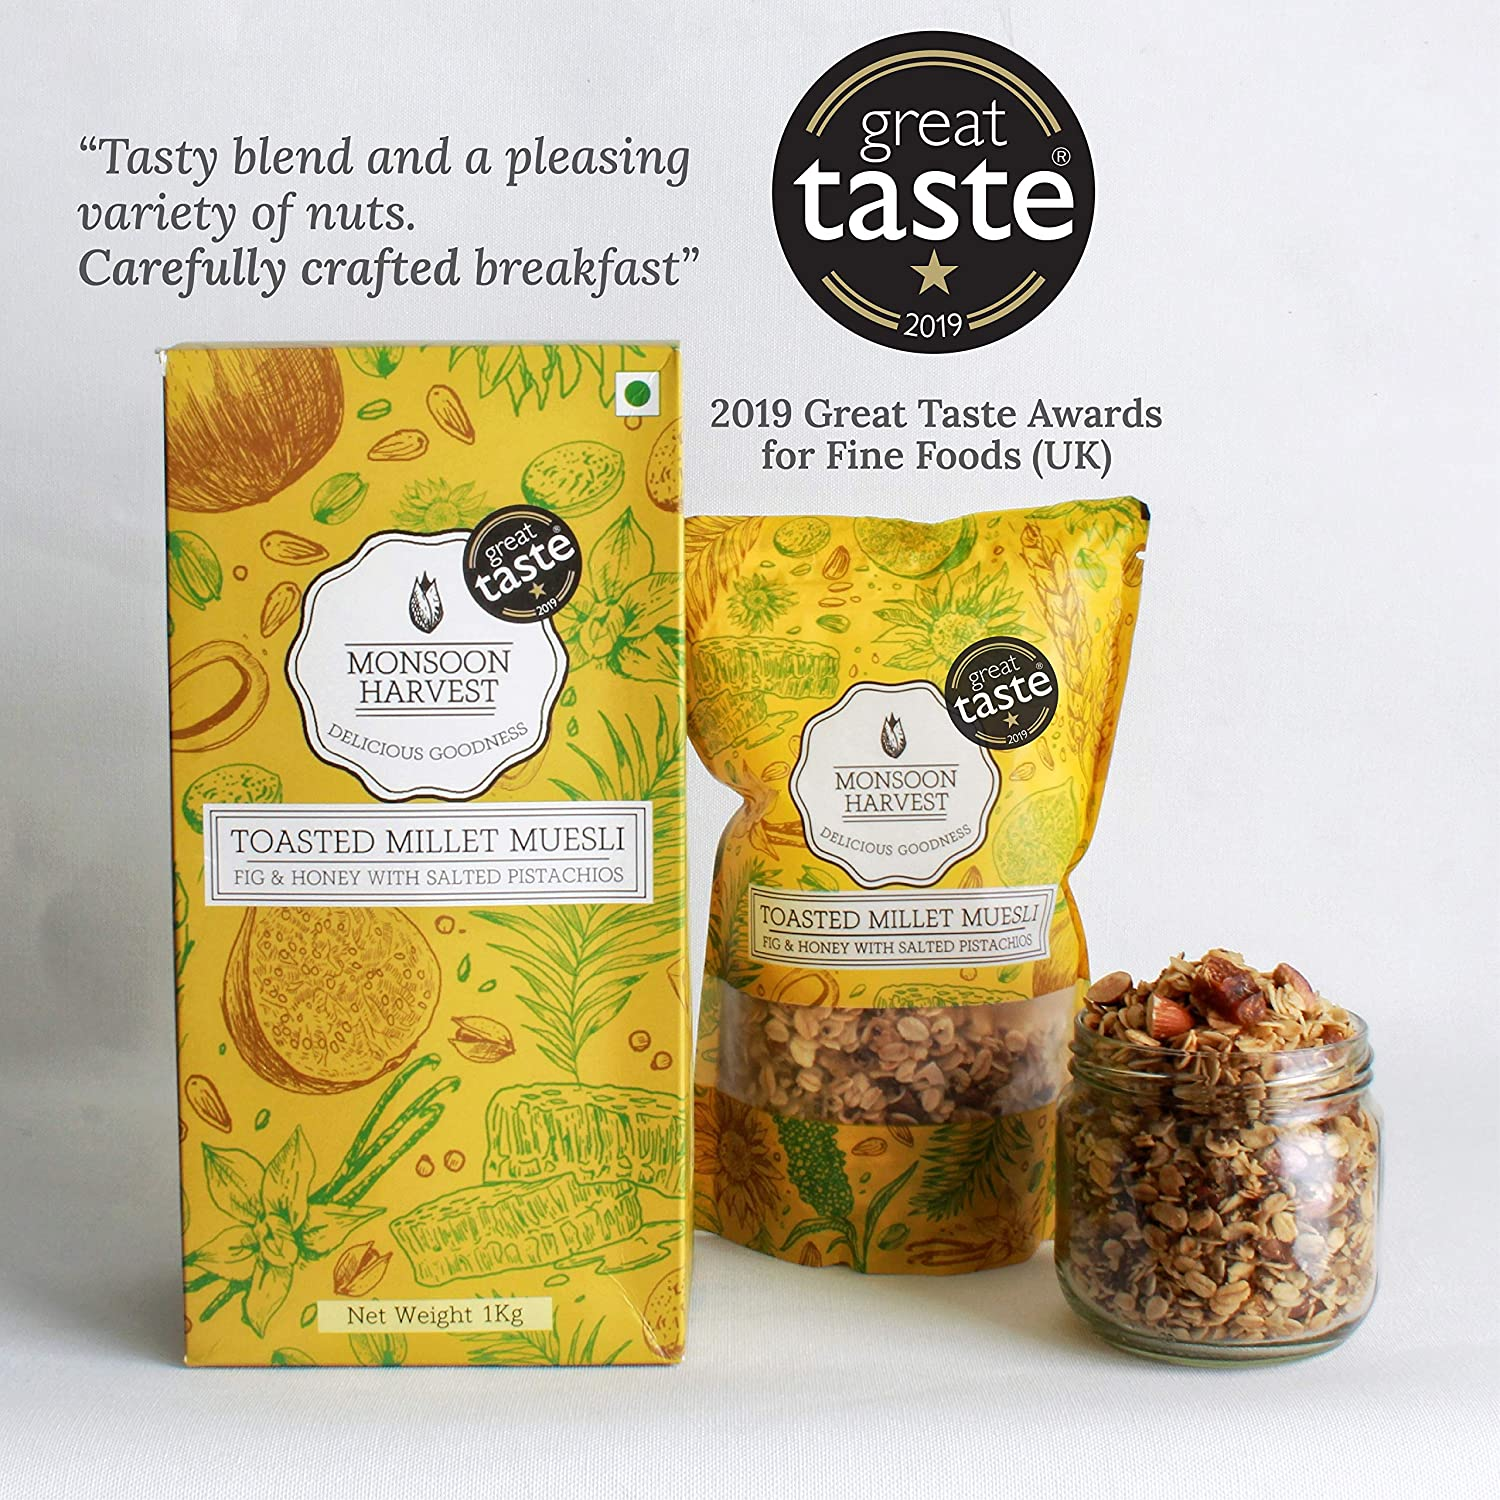 Monsoon Harvest Toasted Millet Muesli, Fig & Honey with Salted Pistachios